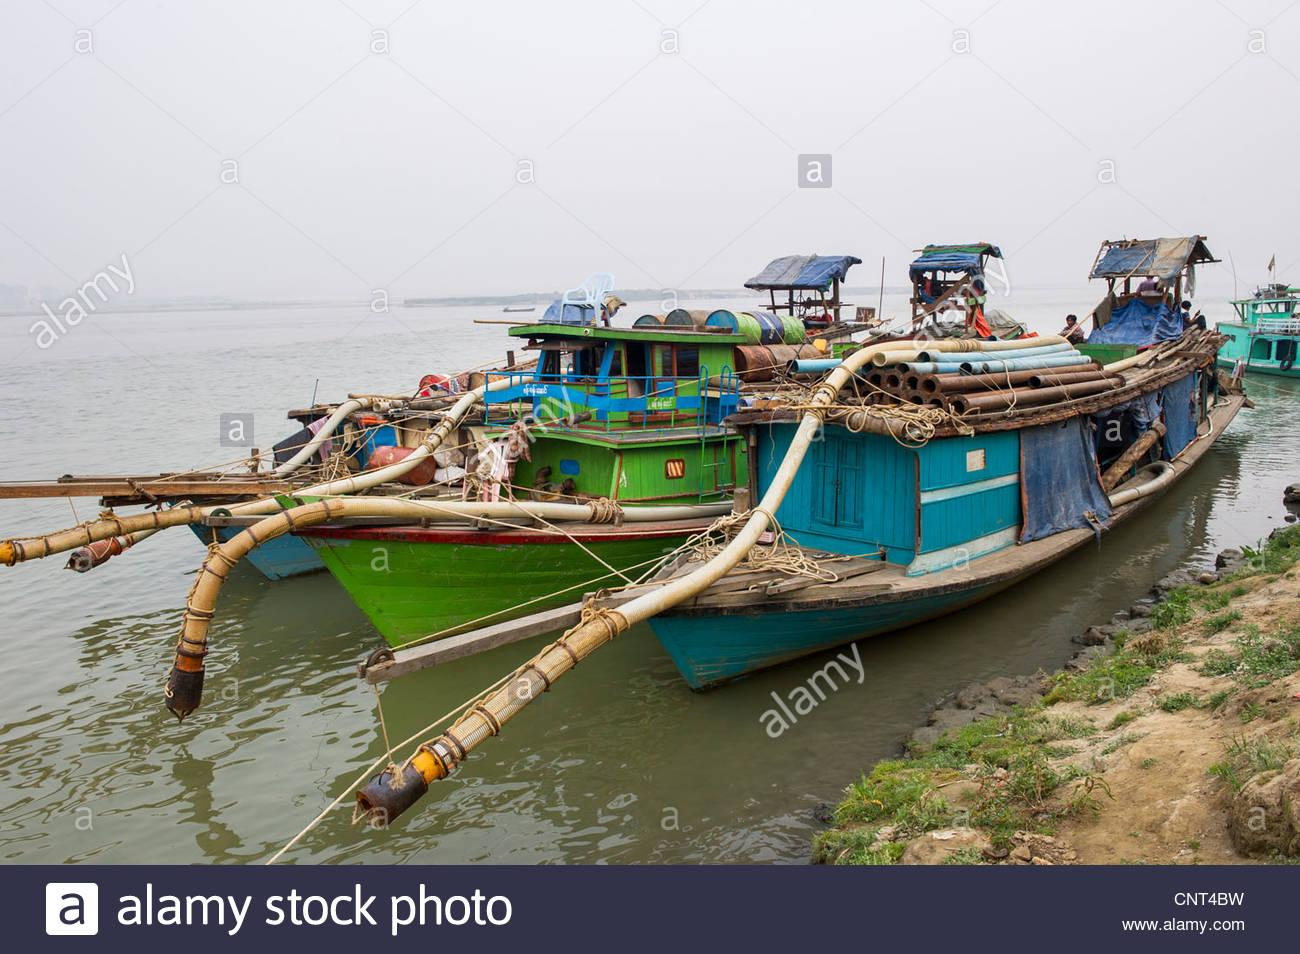 boats-used-in-gold-dredging-moored-on-the-ayeyarwady-river-in-mingun-CNT4BW.jpg